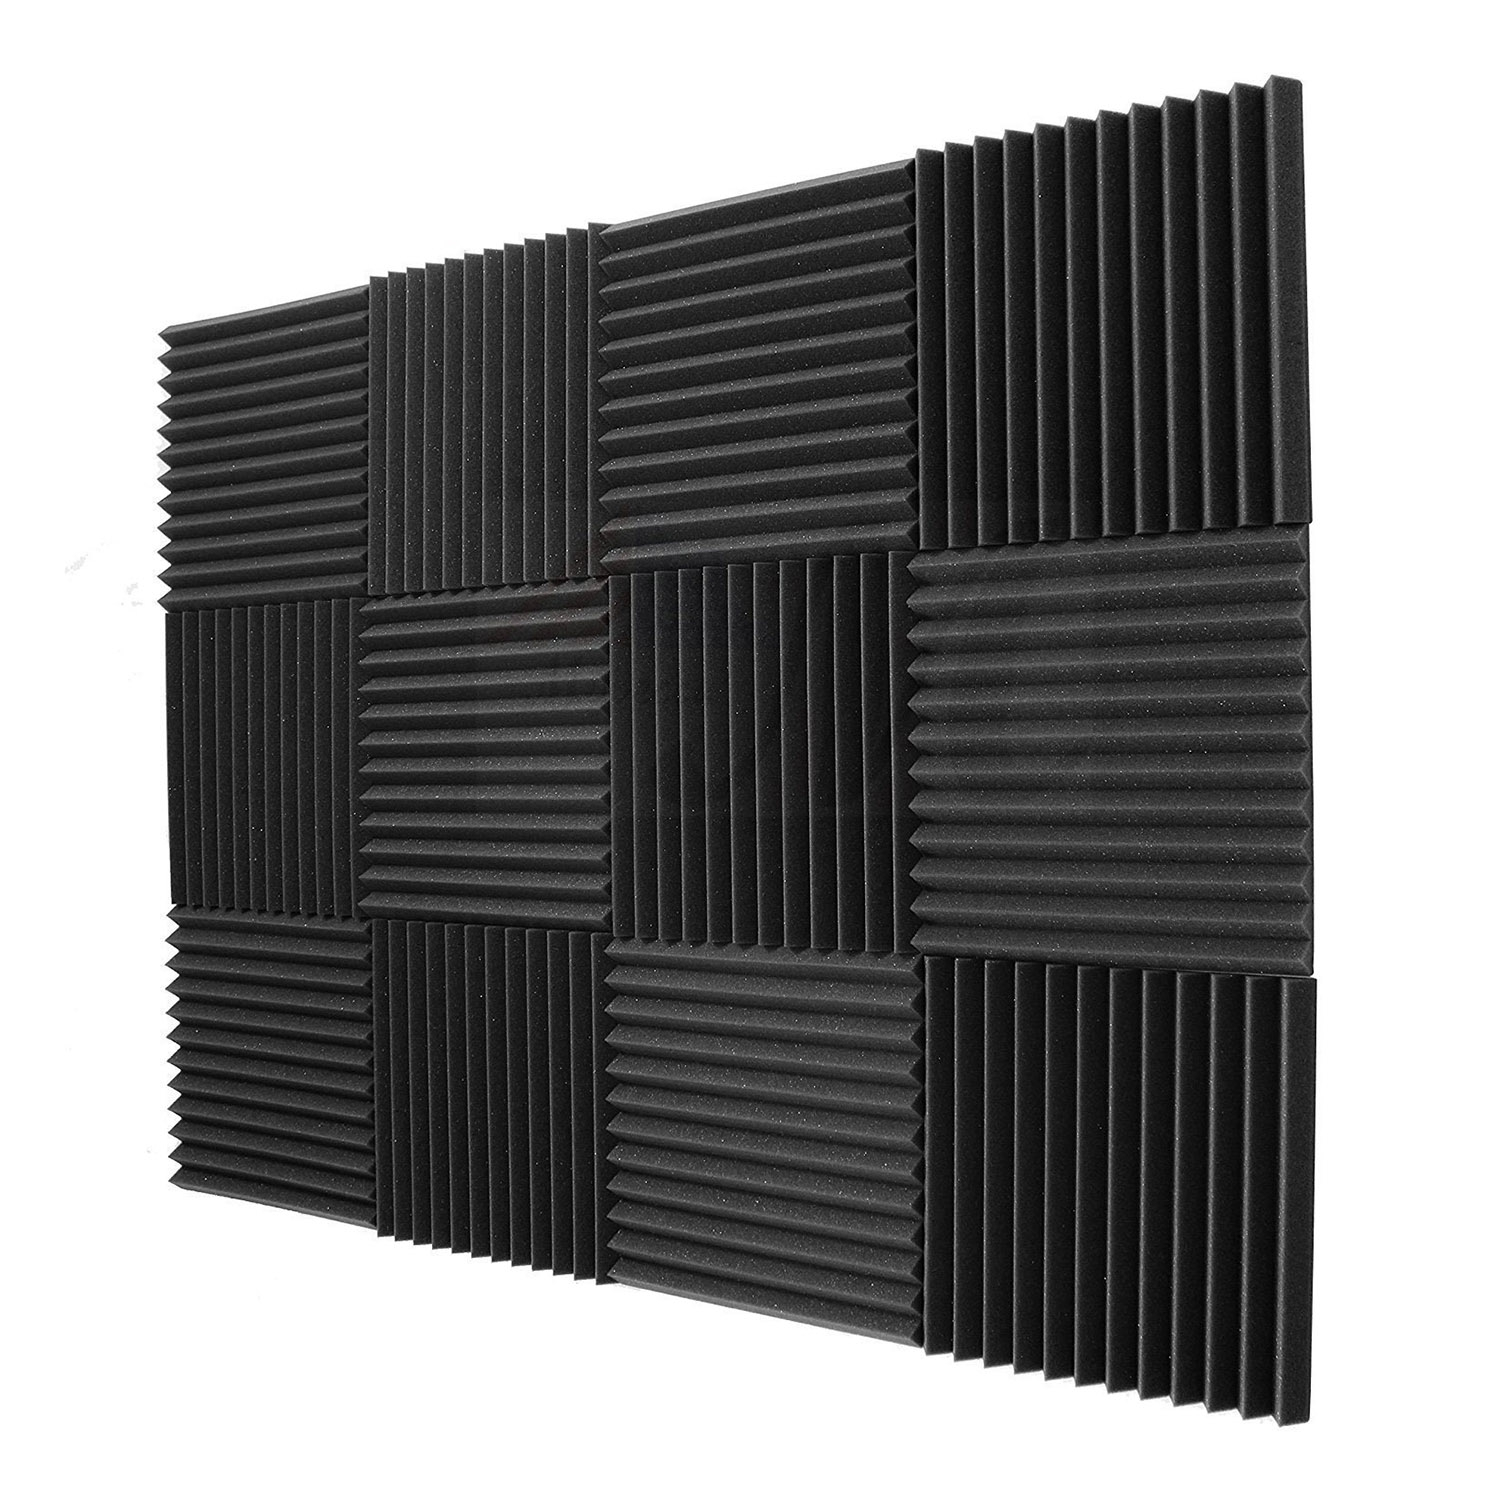 HOT-12 Pack- Acoustic Panels Foam Engineering Sponge Wedges Soundproofing Panels 1inch X 12 Inch X 12inch